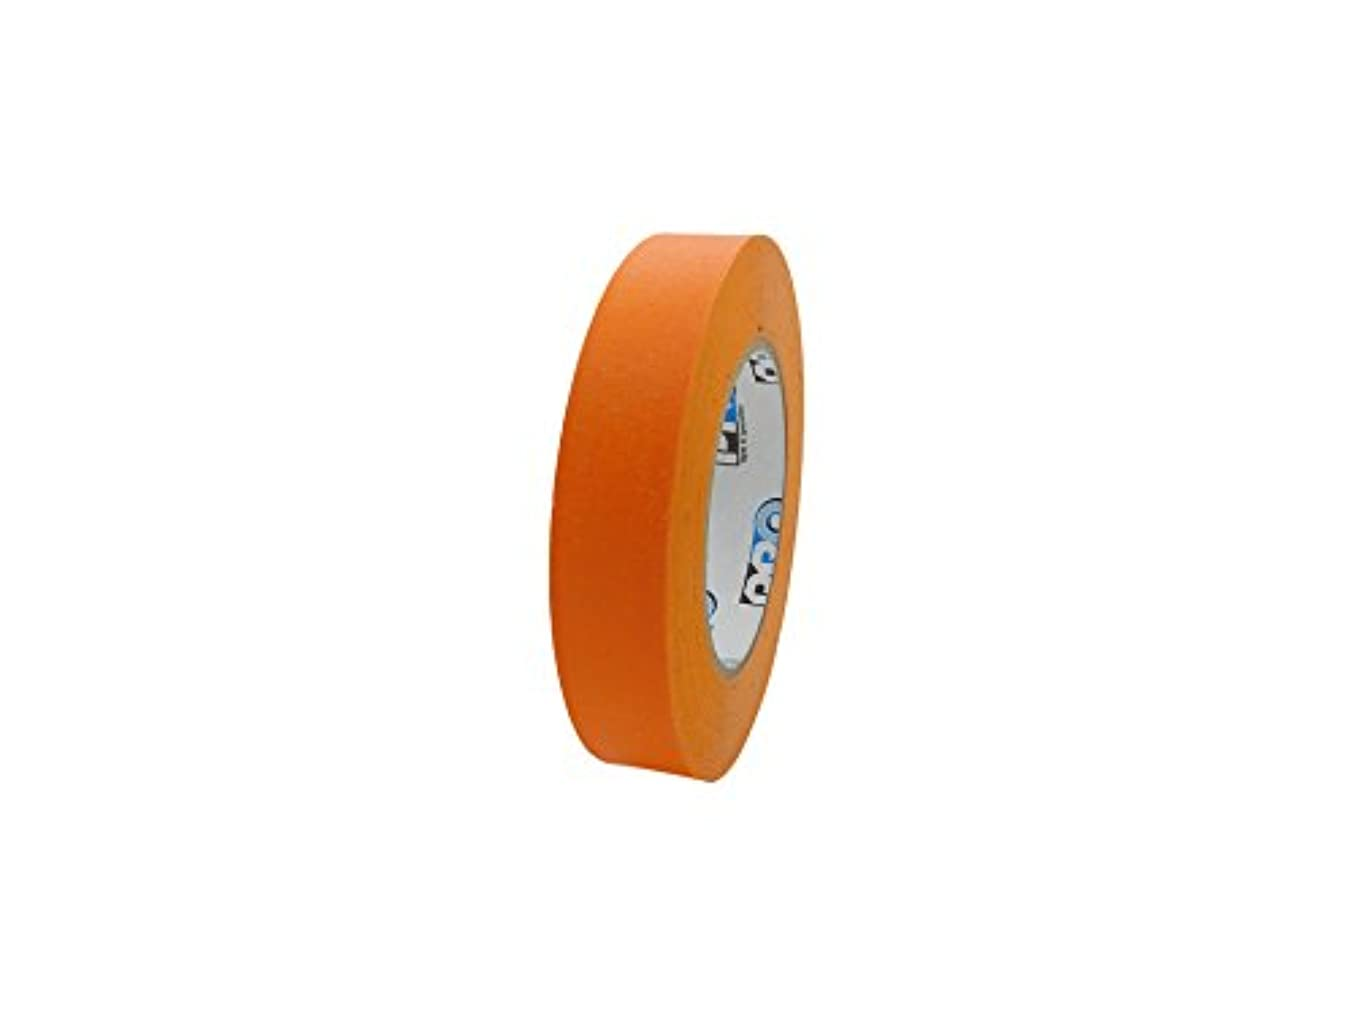 Pro 46 Rs246Or25X55 Coloured Crepe Paper Tape - Orange